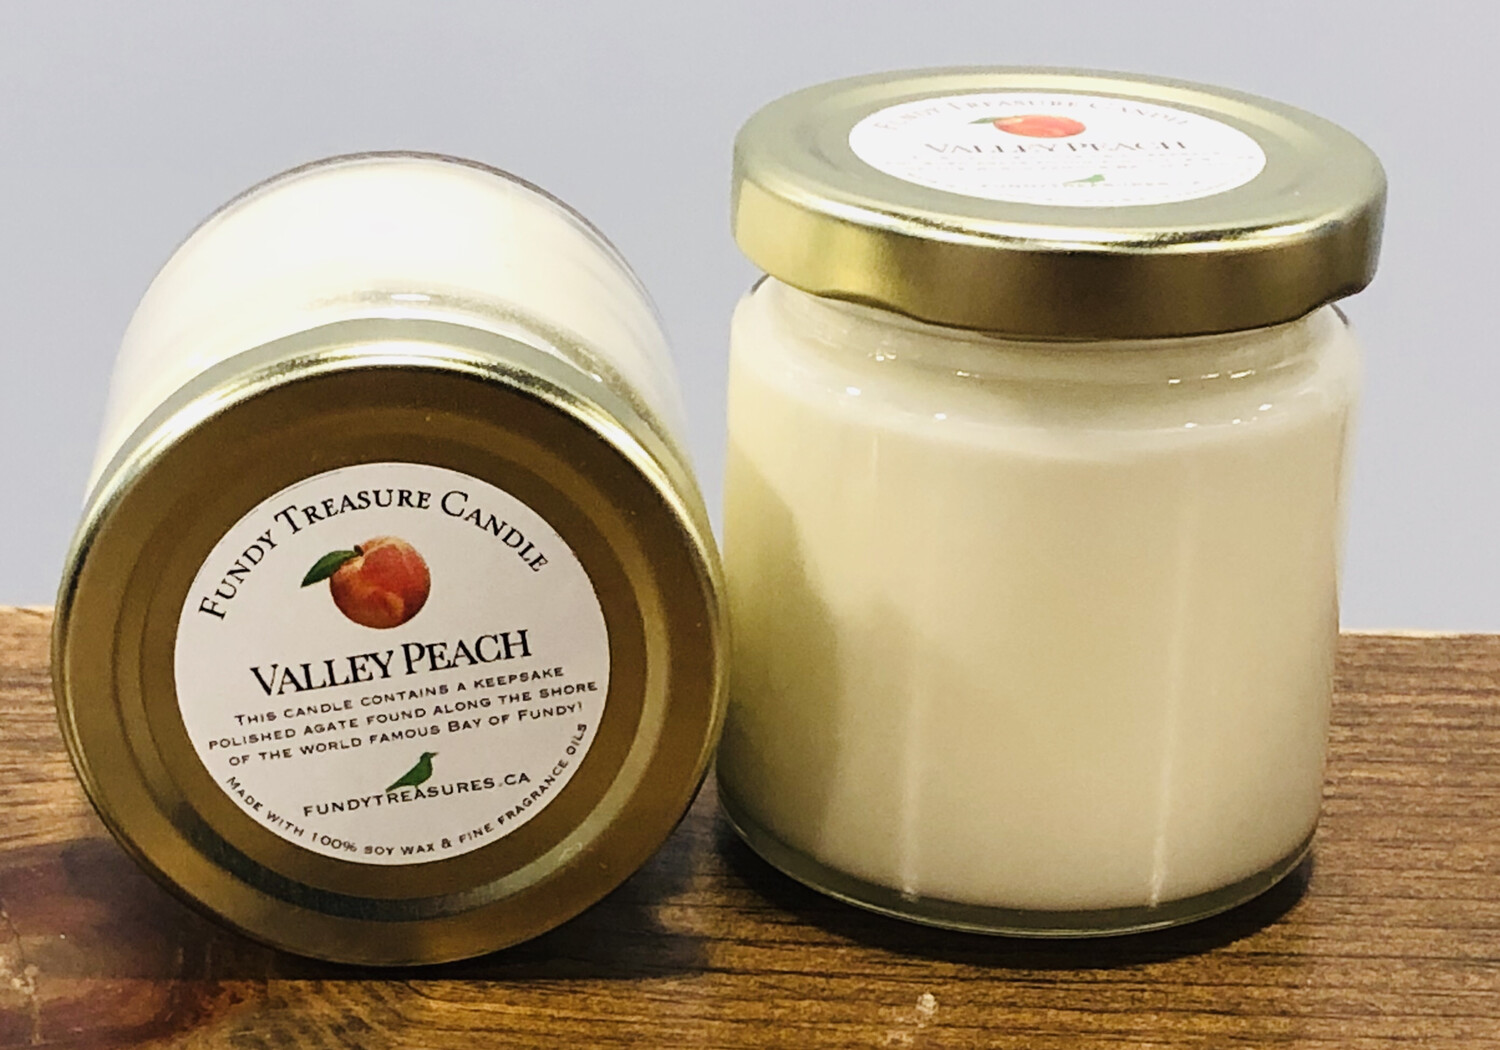 Valley Peach Candle 3.5oz